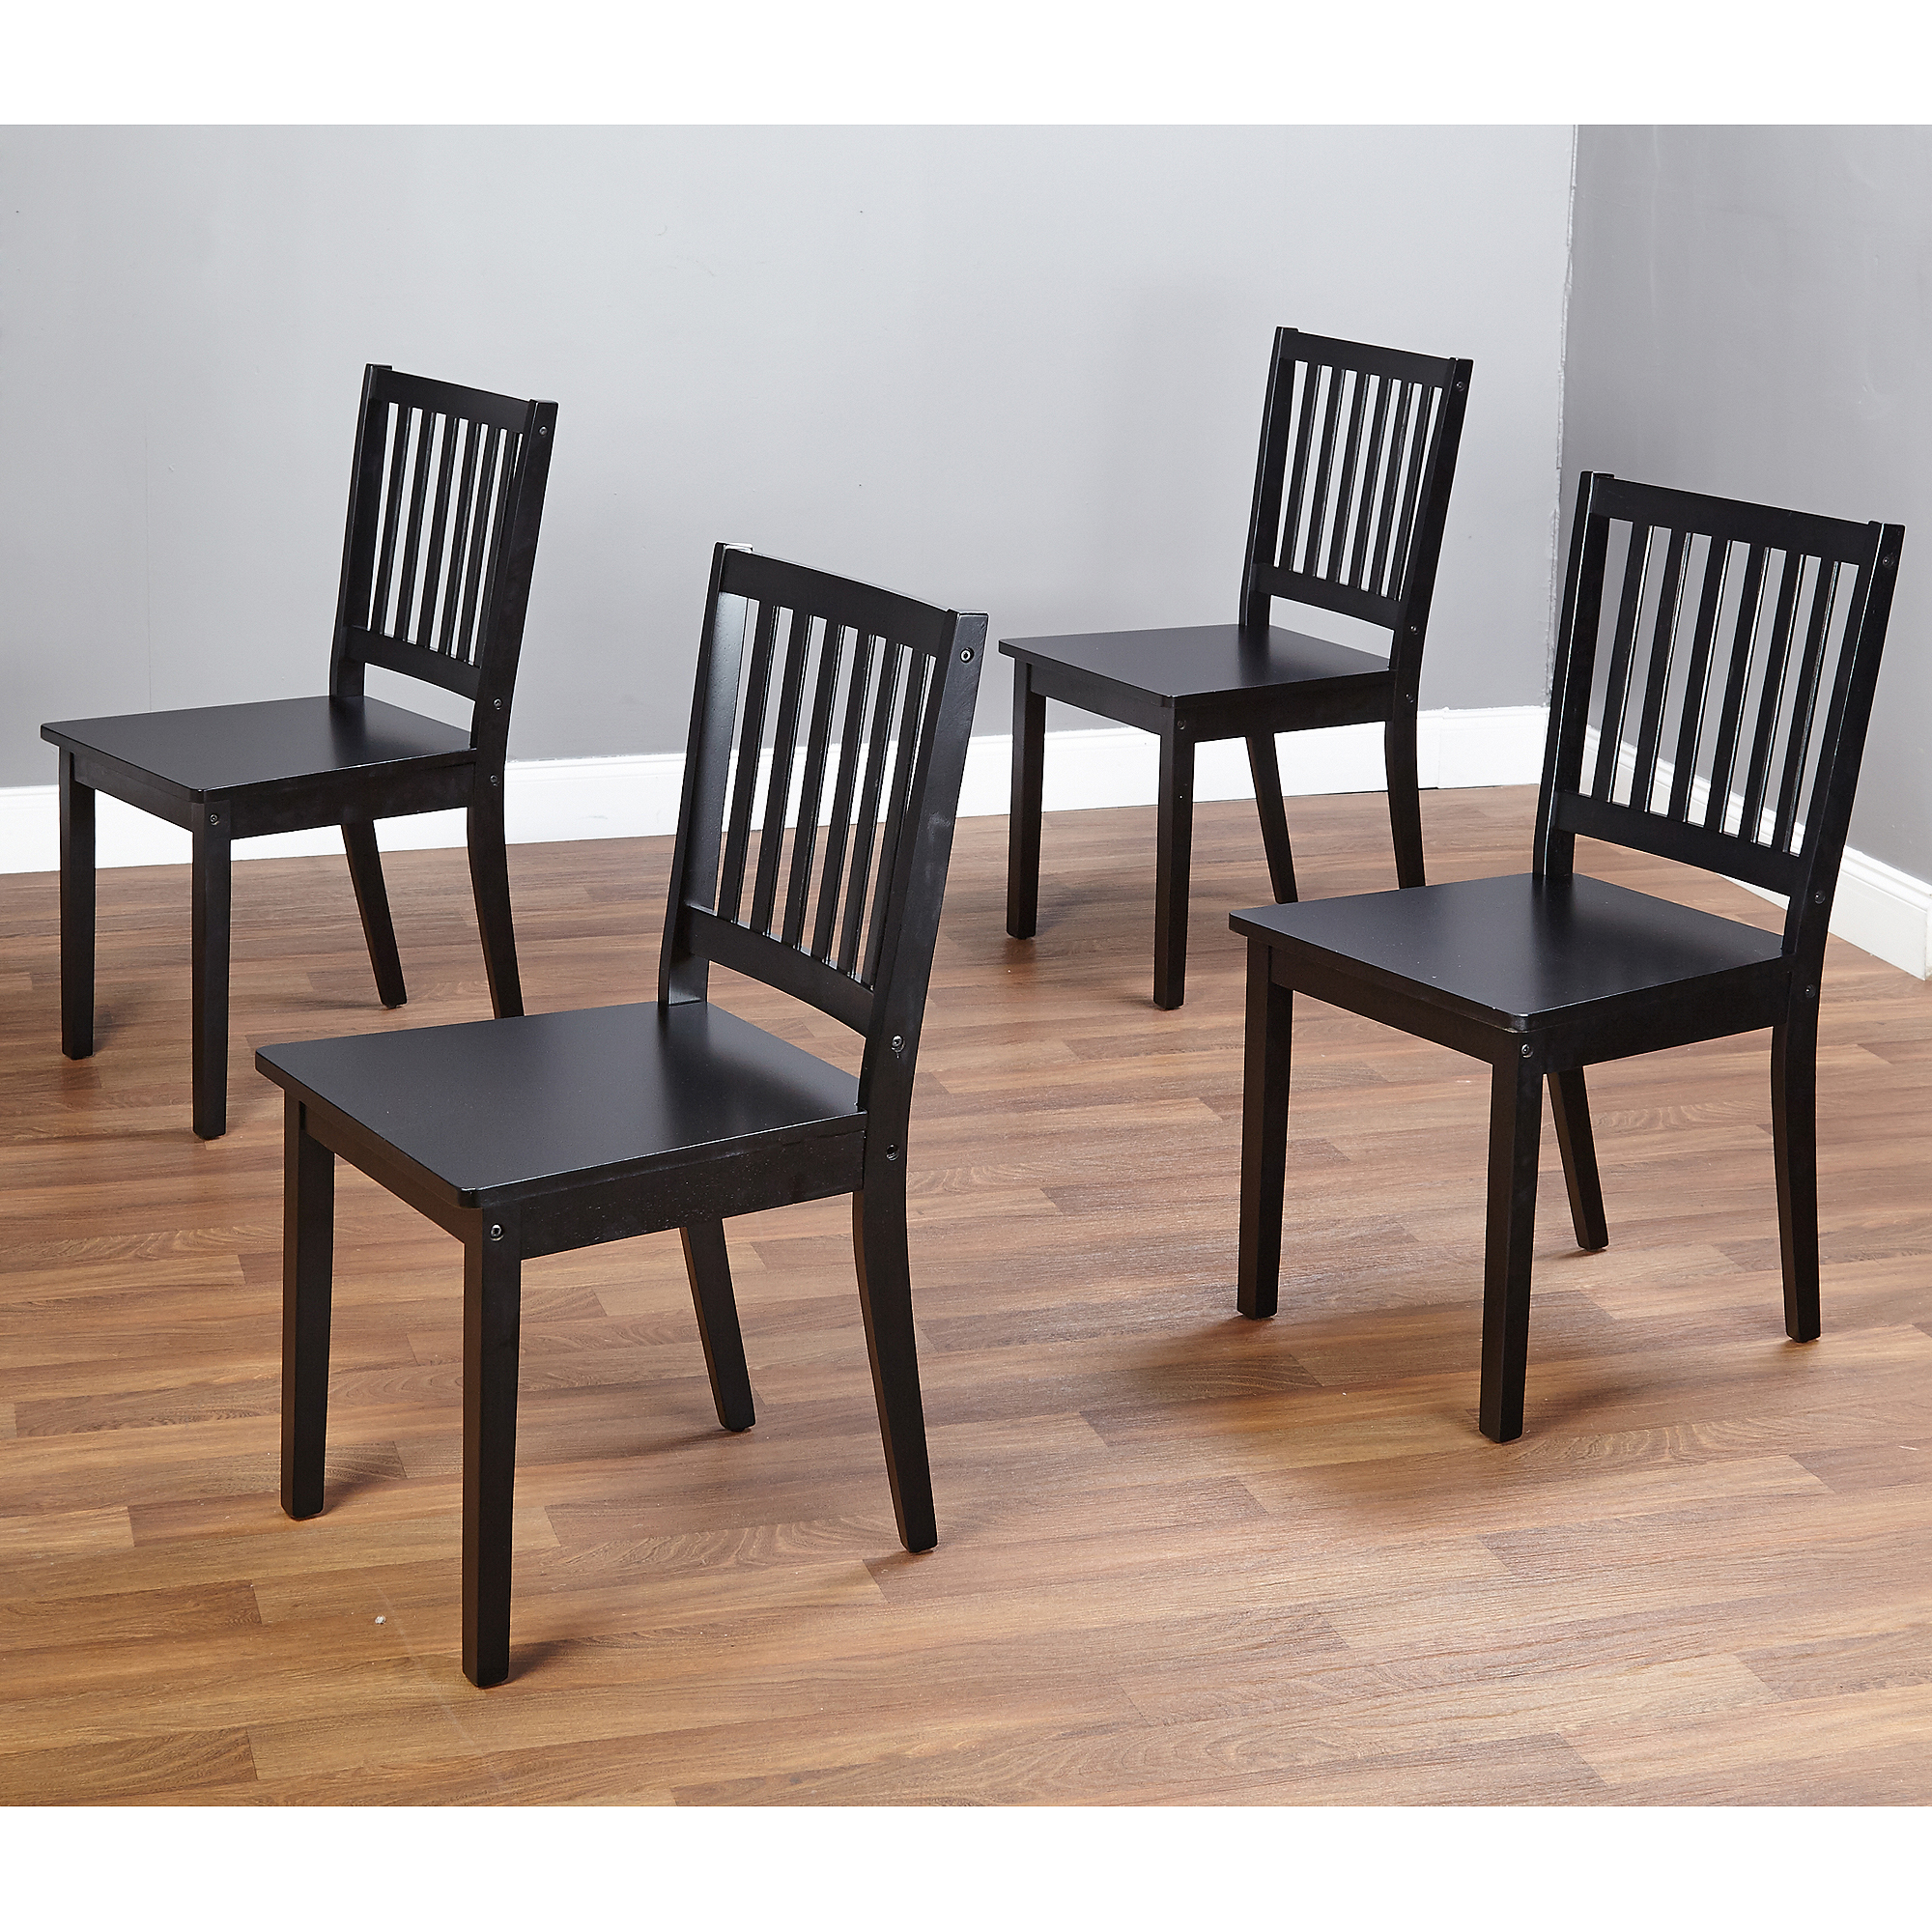 Fashionable black dining chairs shaker dining chairs, set of 4, black - walmart.com pjzqogl